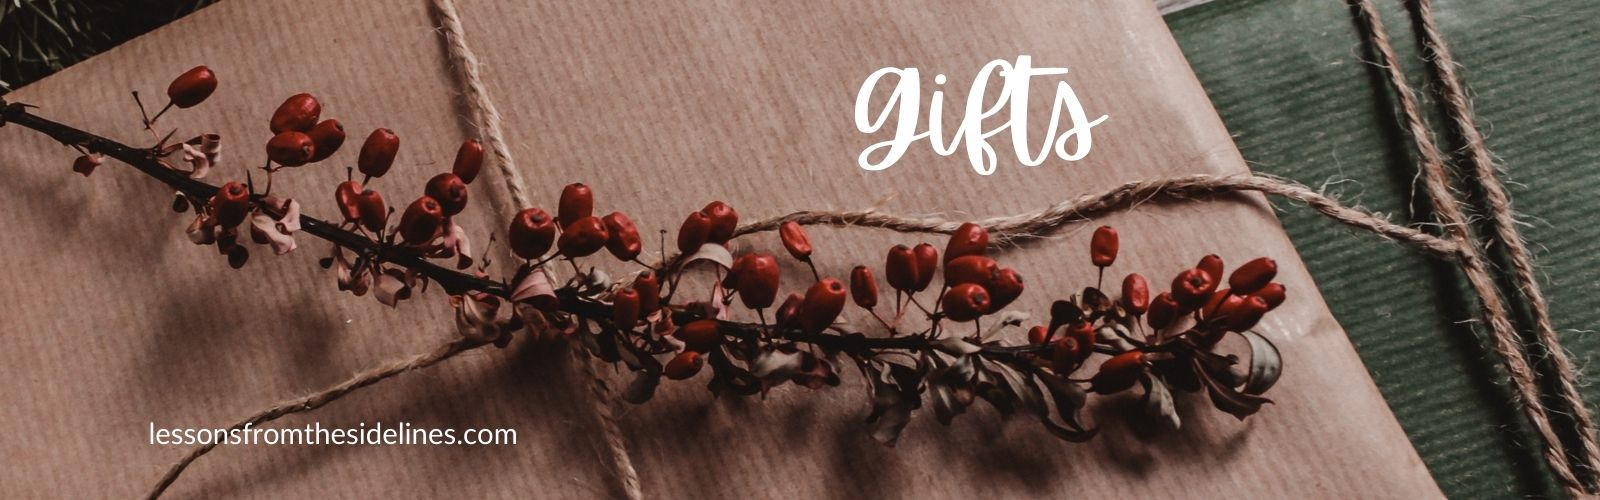 Gifts - Lessons from the Sidelines